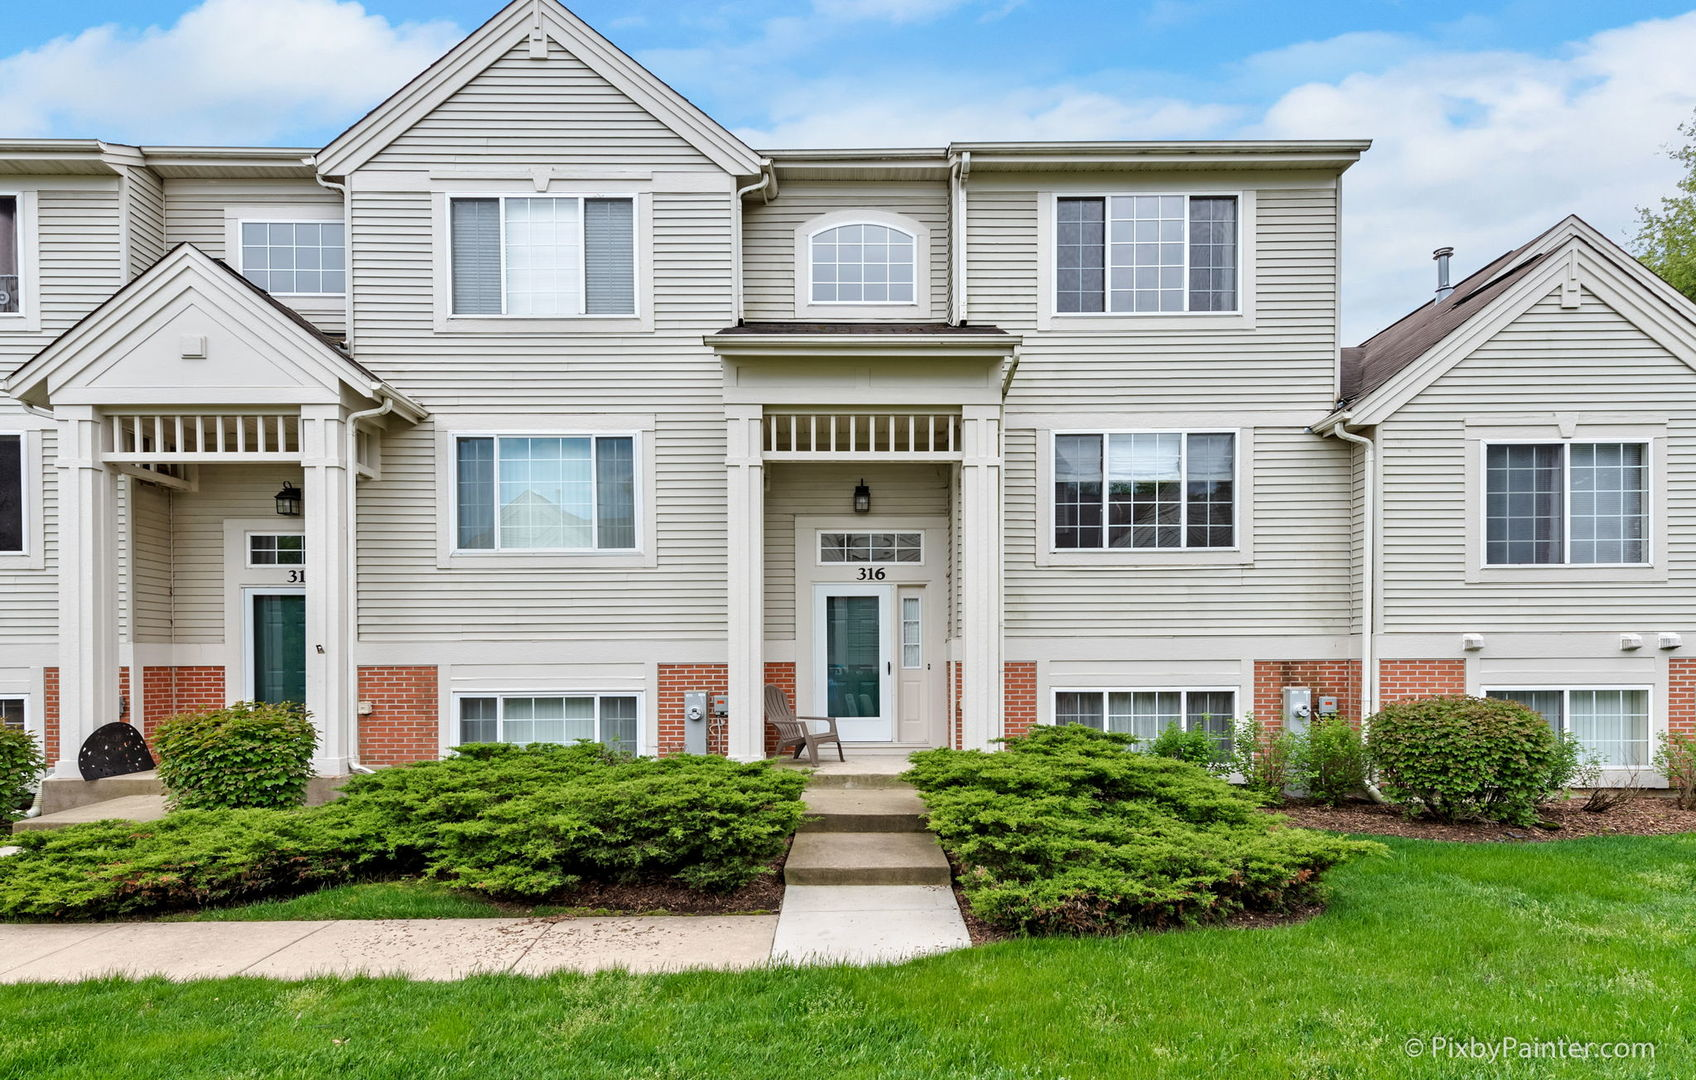 Photo for 316 New Haven Drive, Cary, IL 60013 (MLS # 10728463)